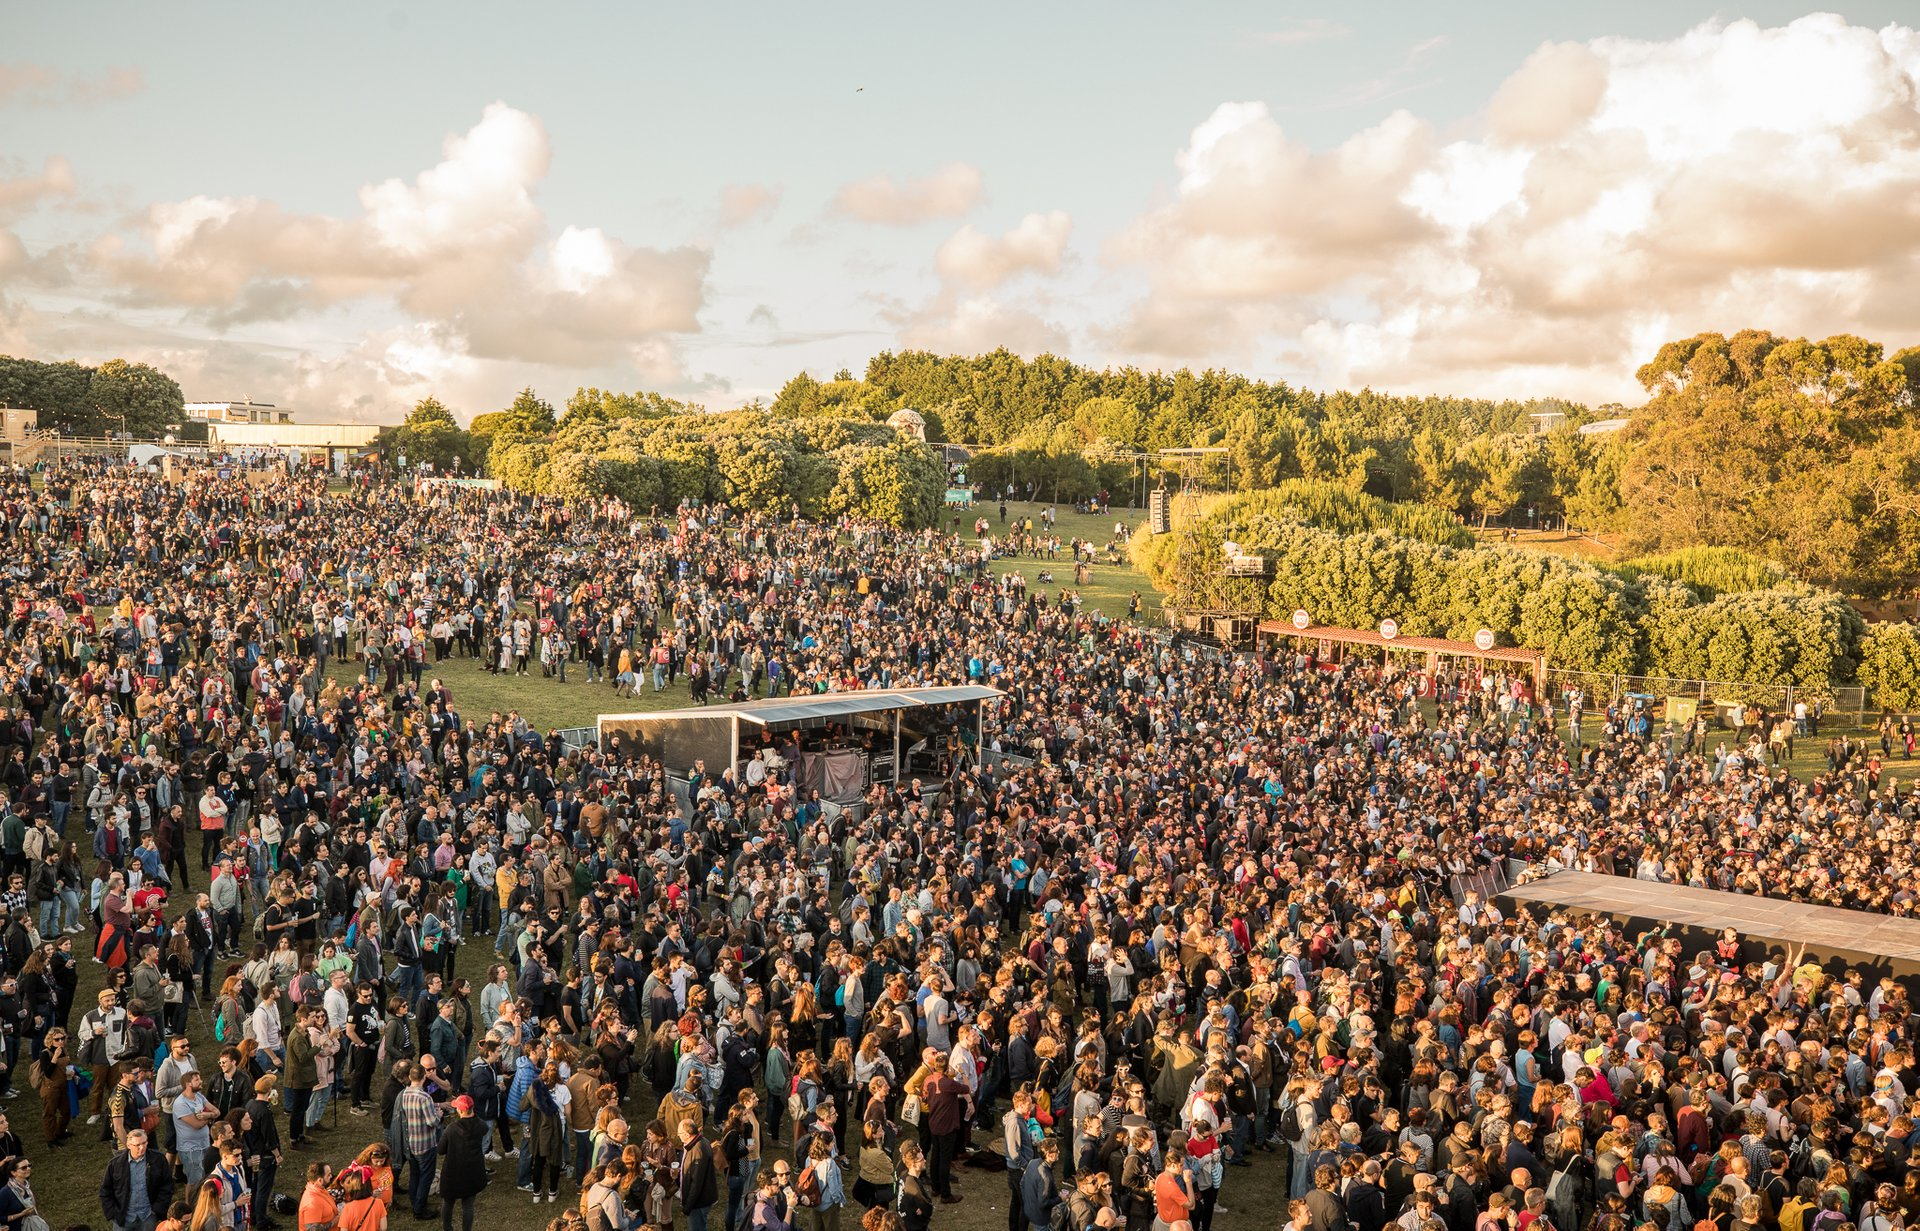 NOS Primavera Sound in Porto - Best Season 2020